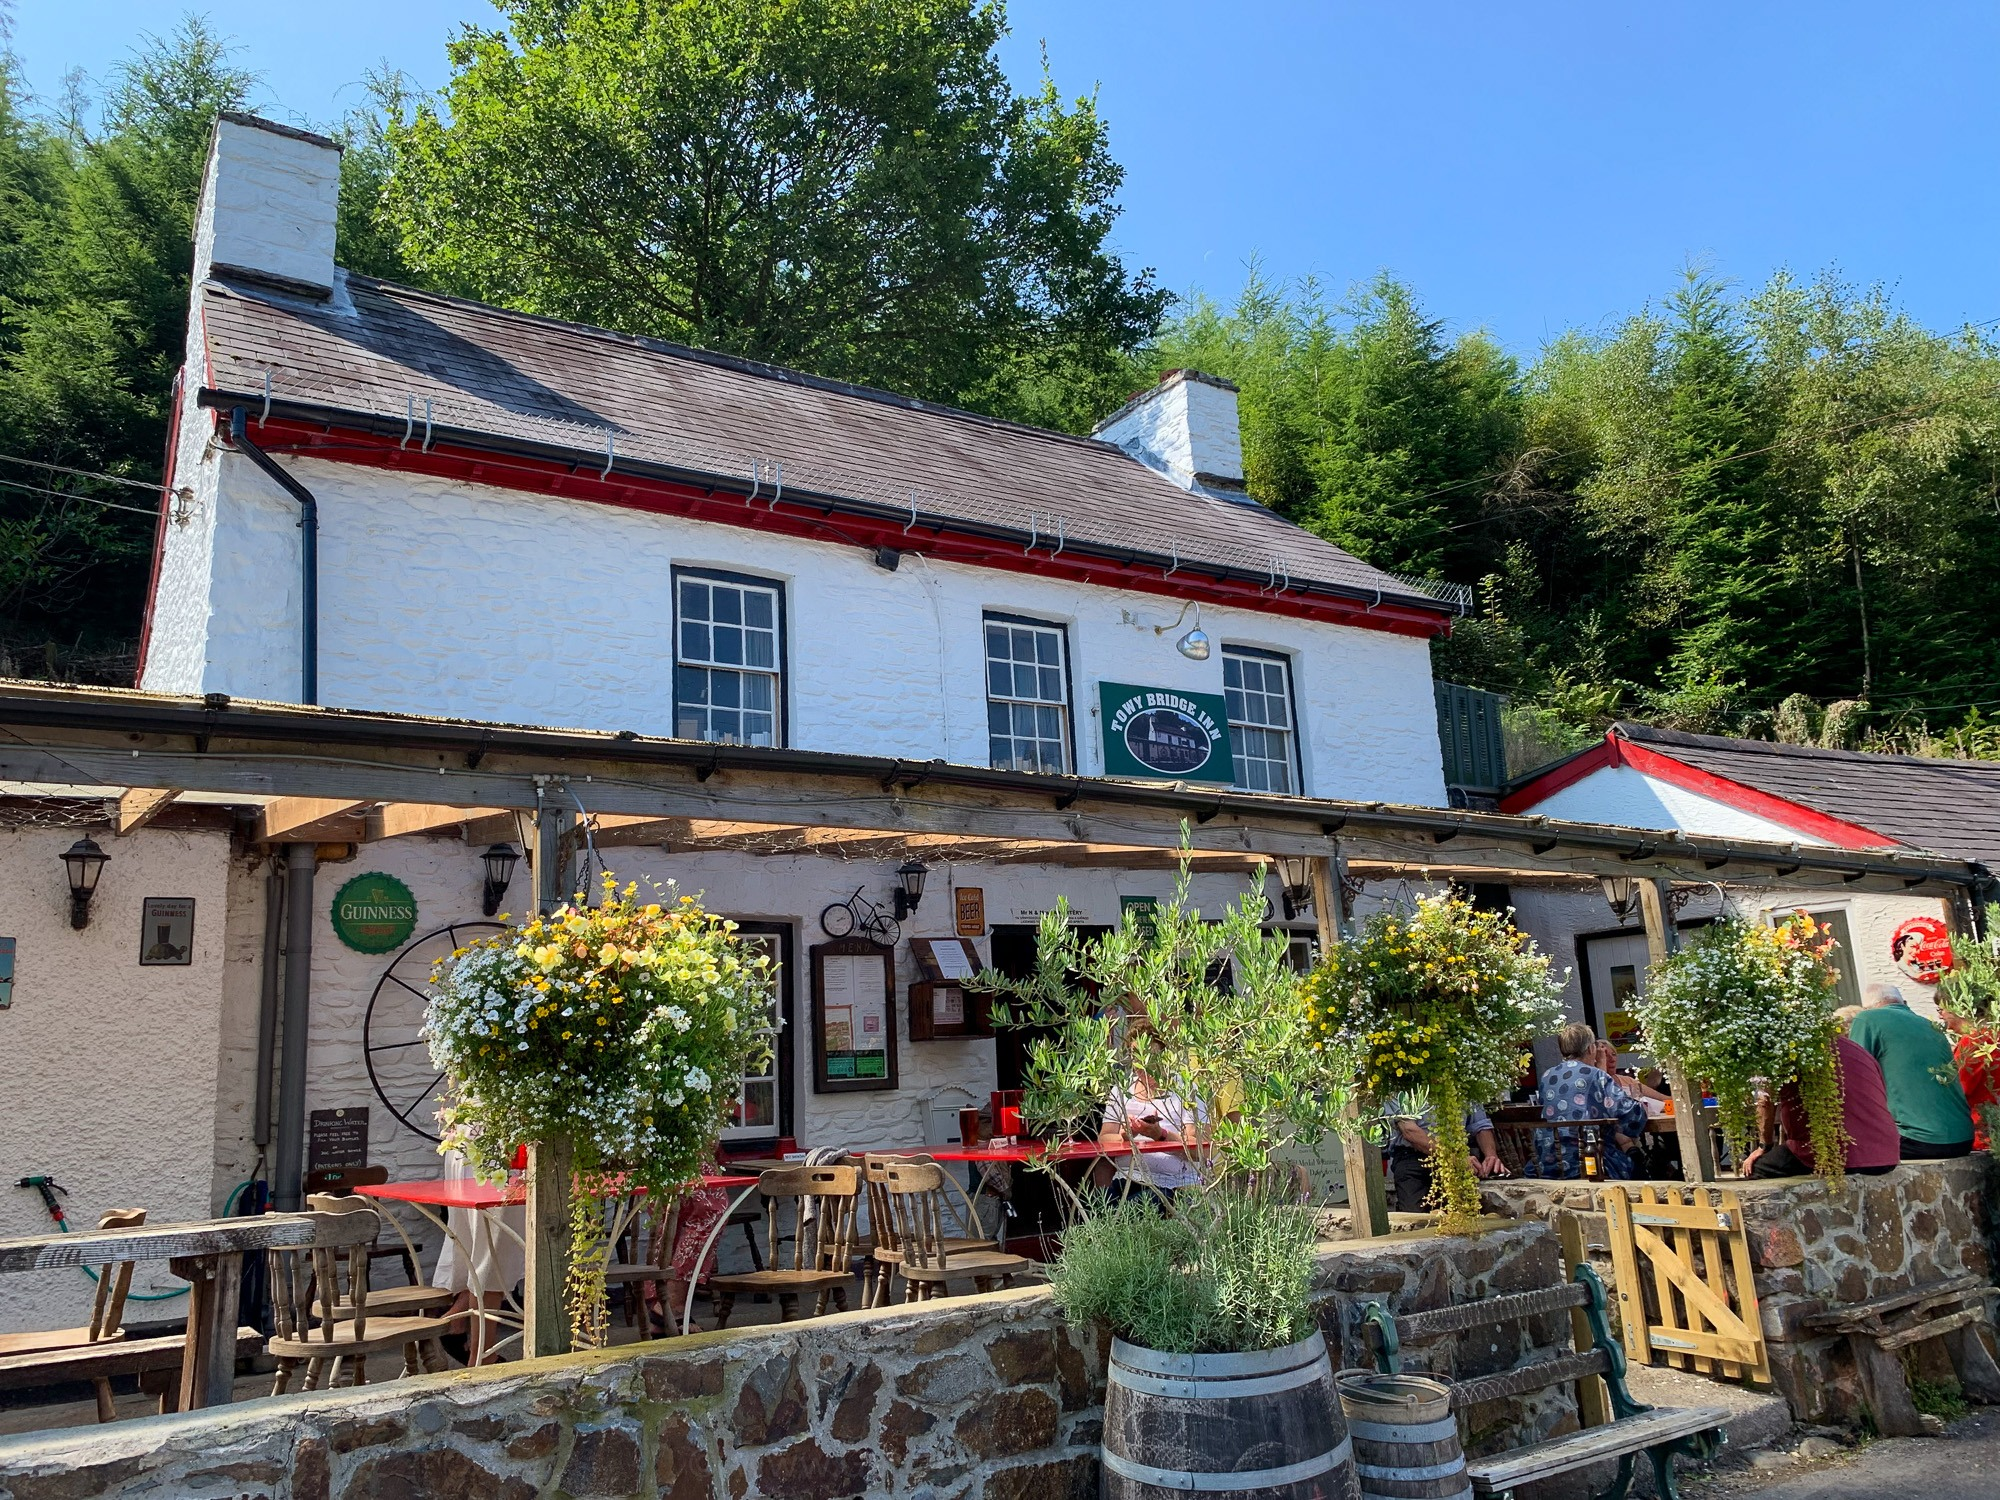 The Towy Bridge Inn near the Rhandirmwyn campsite